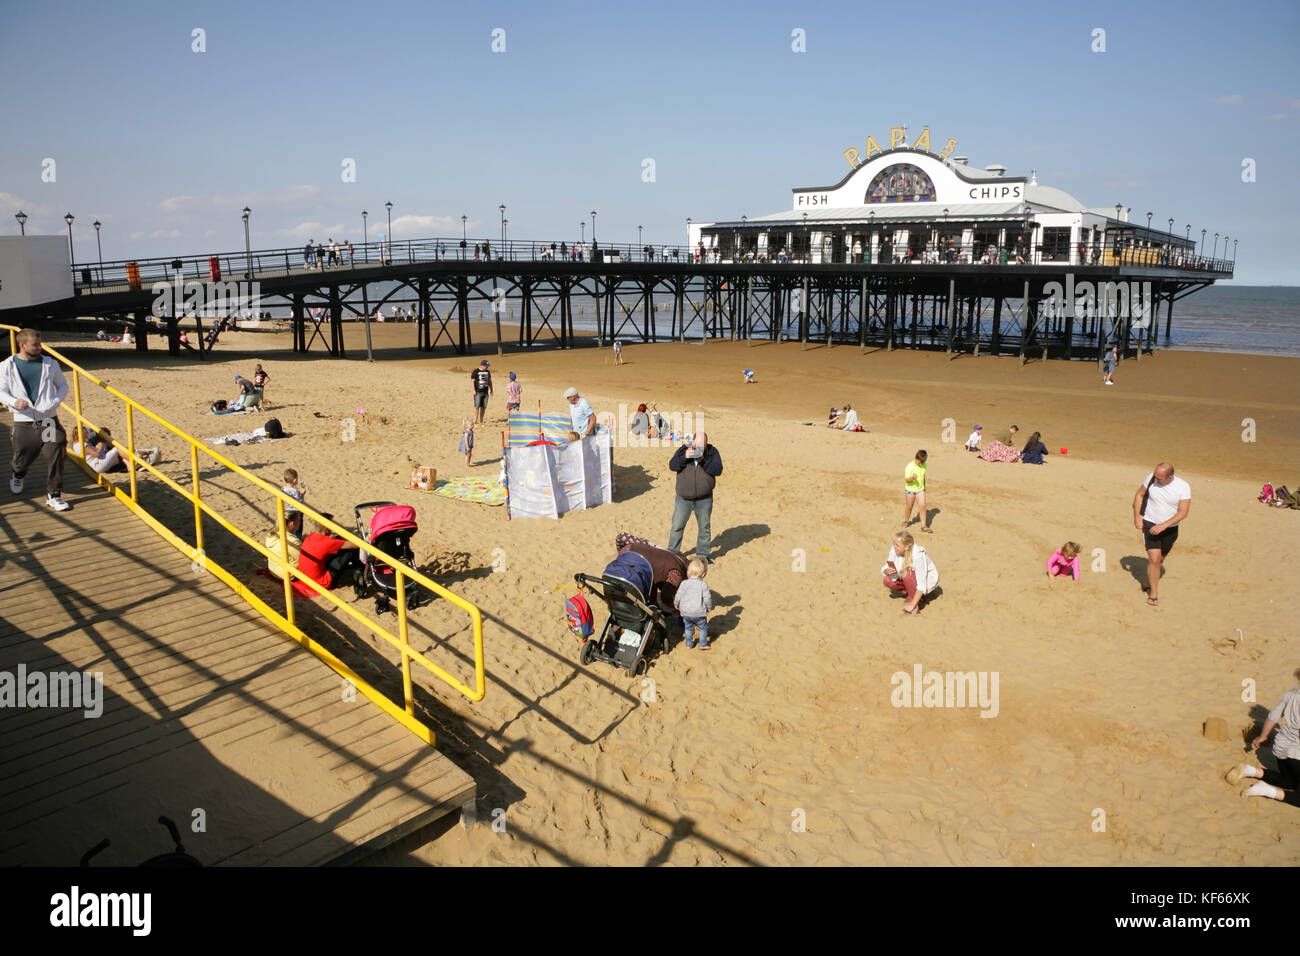 Cleethorpes Pier, UK. - Stock Image